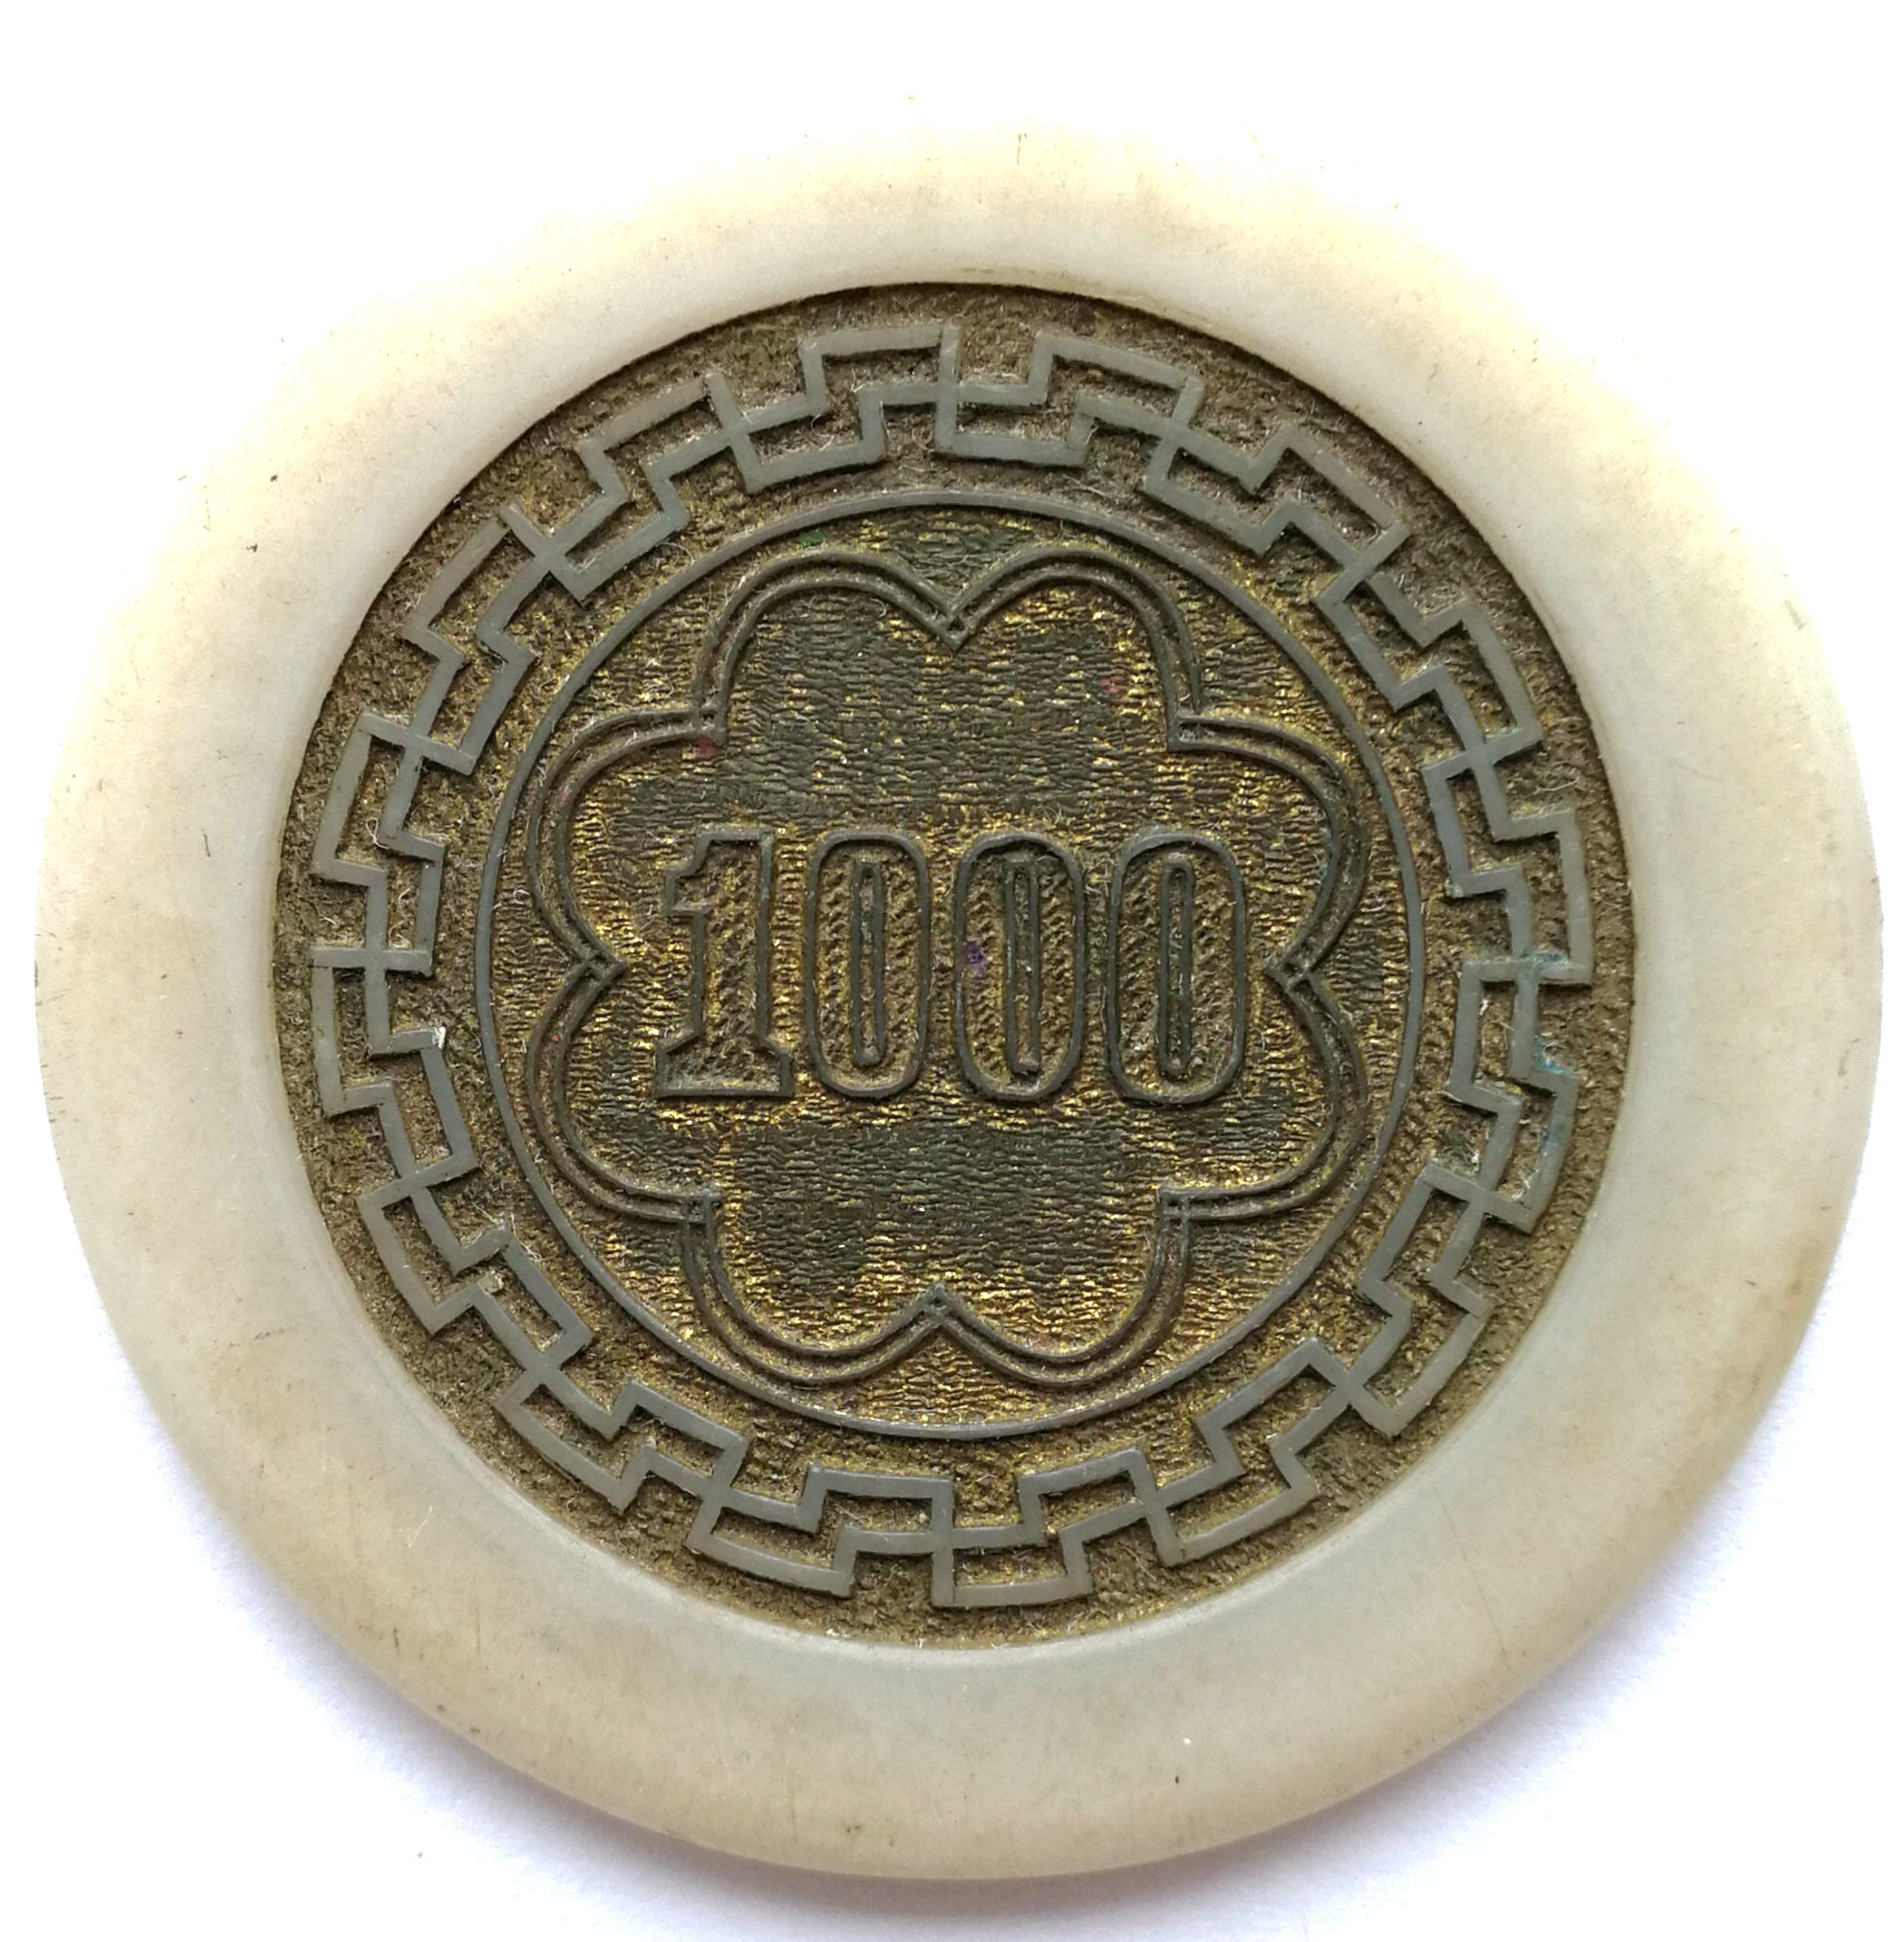 BT646, Shanghai Casino Token 1000 Dollars, Rare Highest Value, 1920's - Click Image to Close